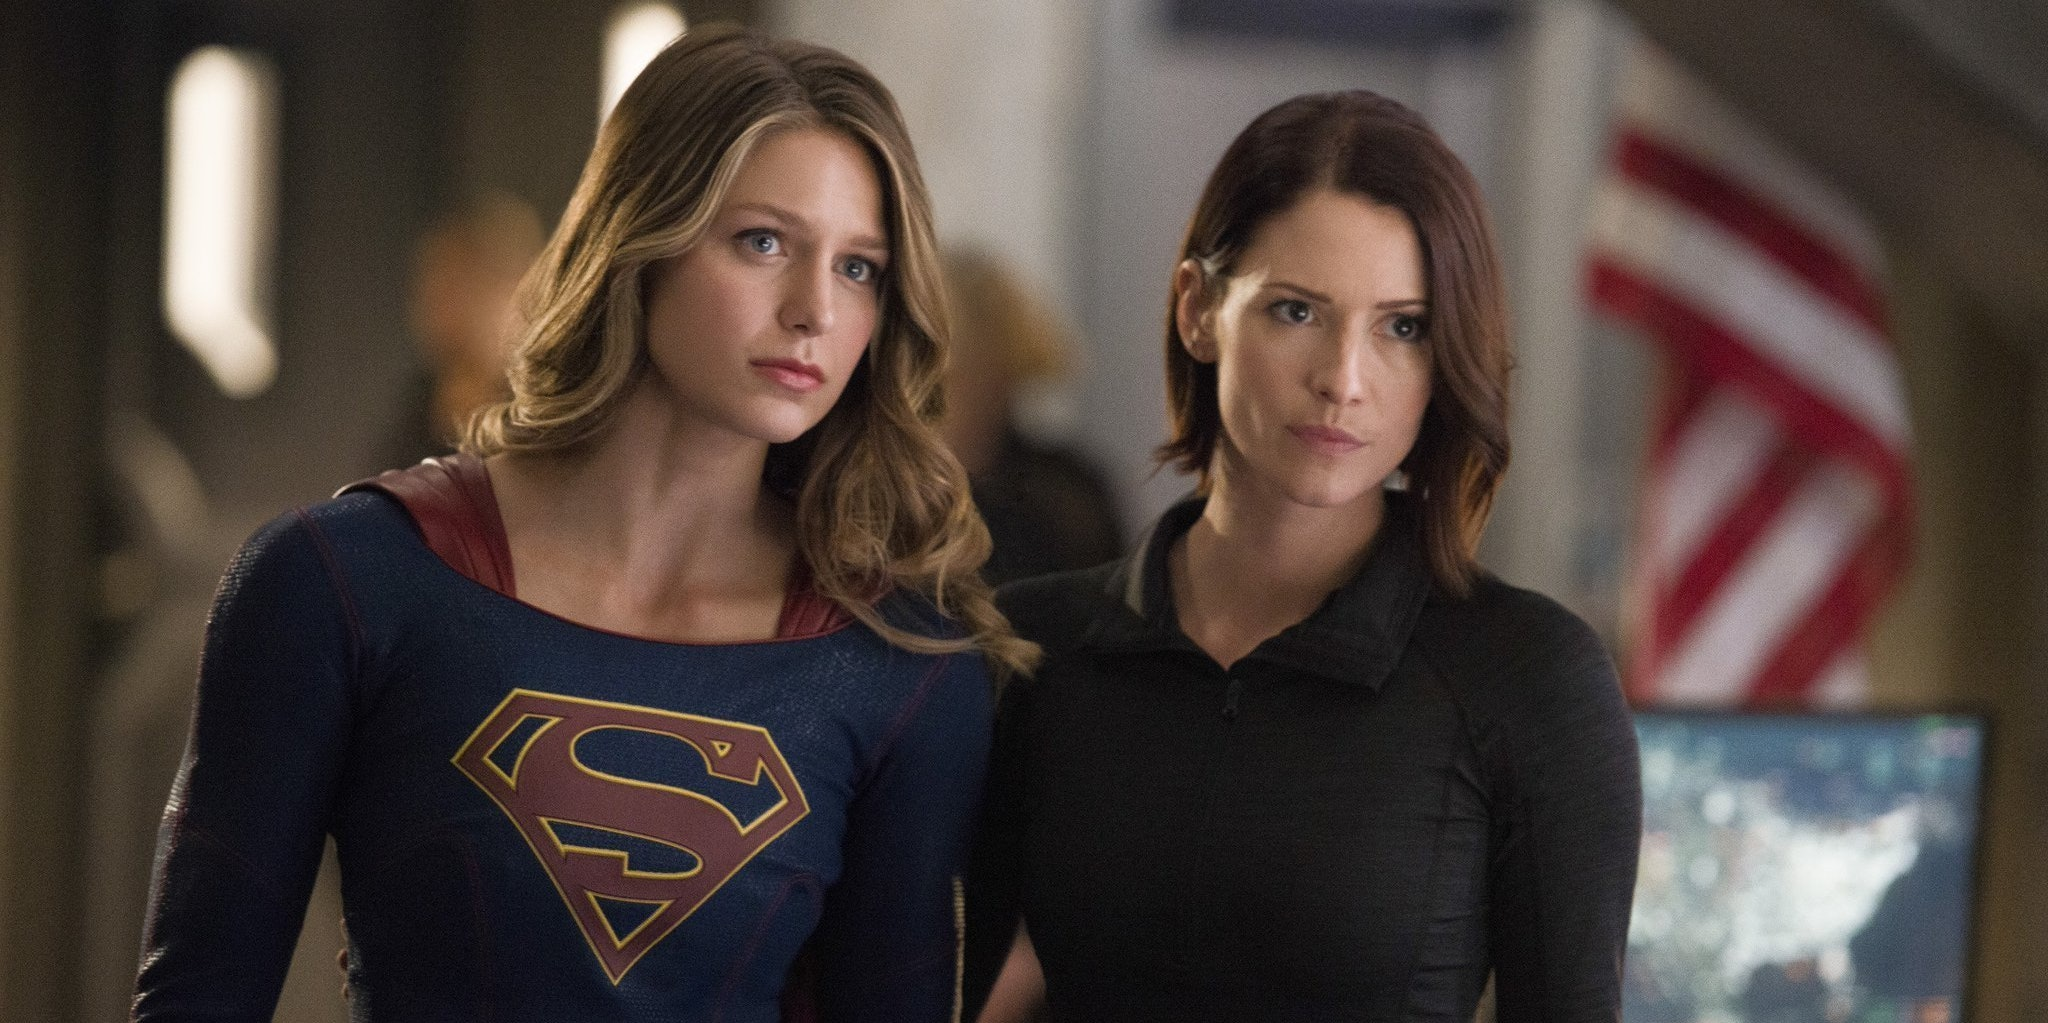 Melissa Benoist as Supergirl and Chyler Leigh as Alex Danvers on 'Supergirl'